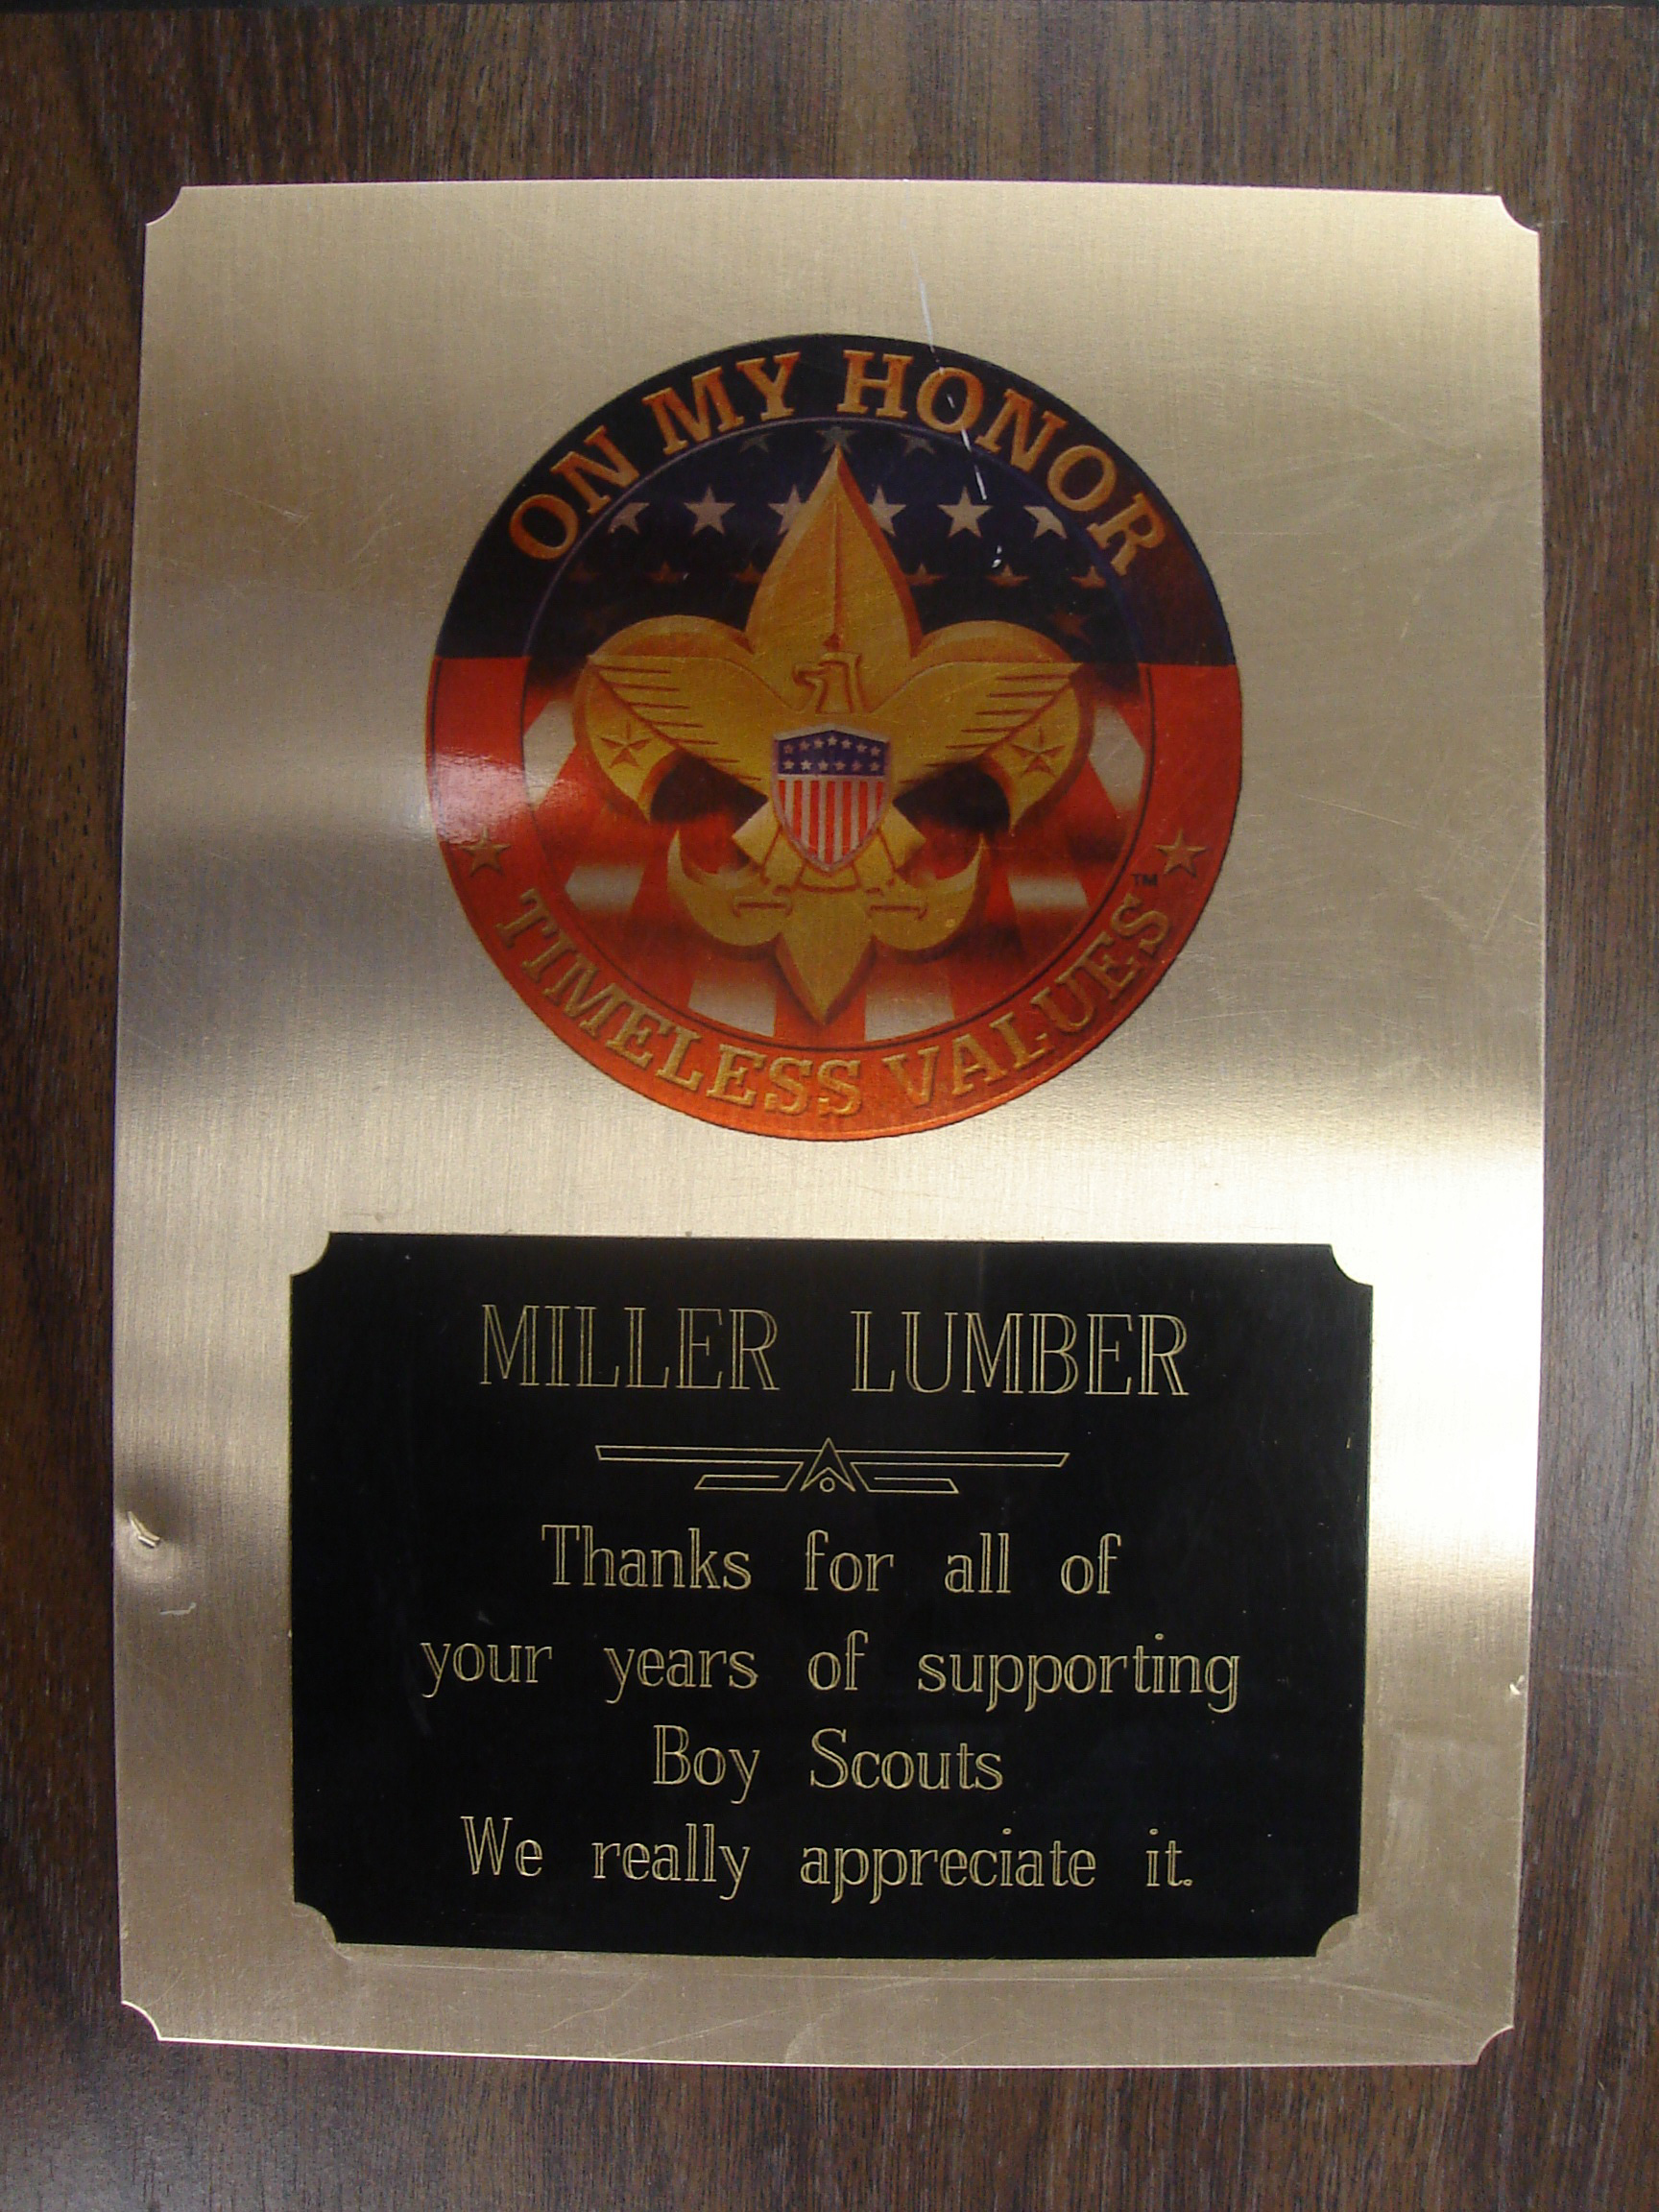 Miller Lumber also supports individuals in scouts by sponsoring activities such as Eagle Projects